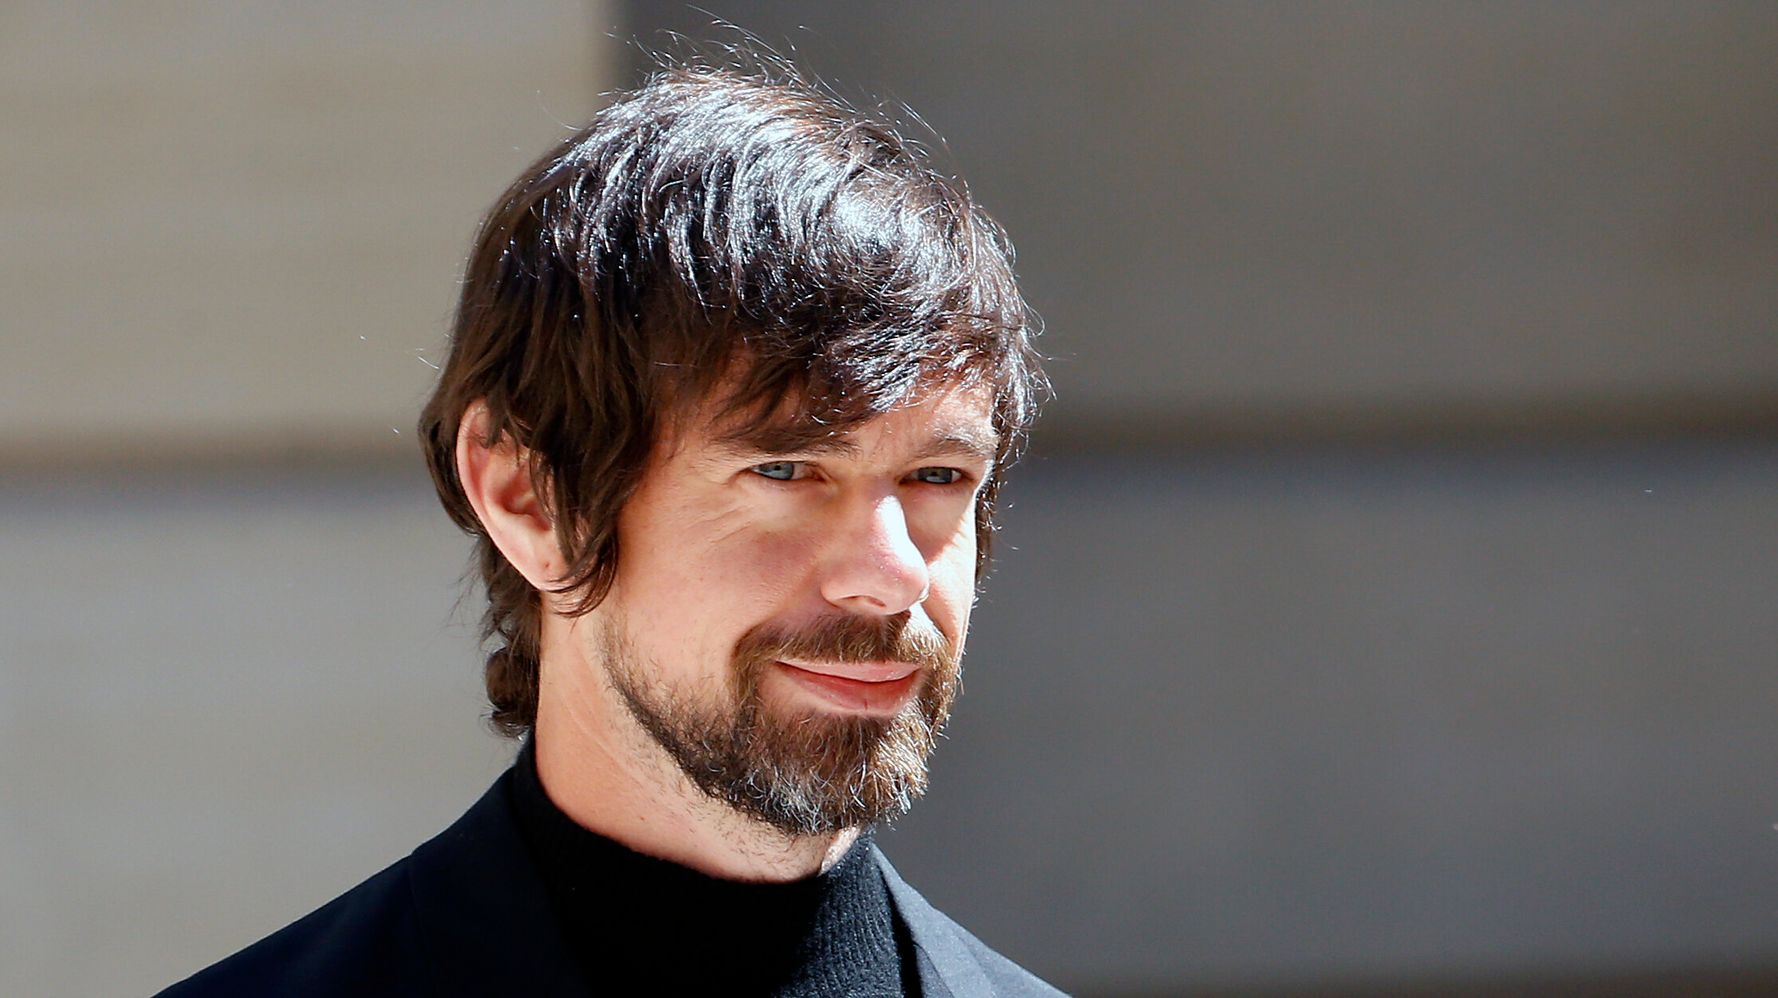 Twitter Billionaire Jack Dorsey Gives U.S. Mayors $15 Million To Fund Basic Income